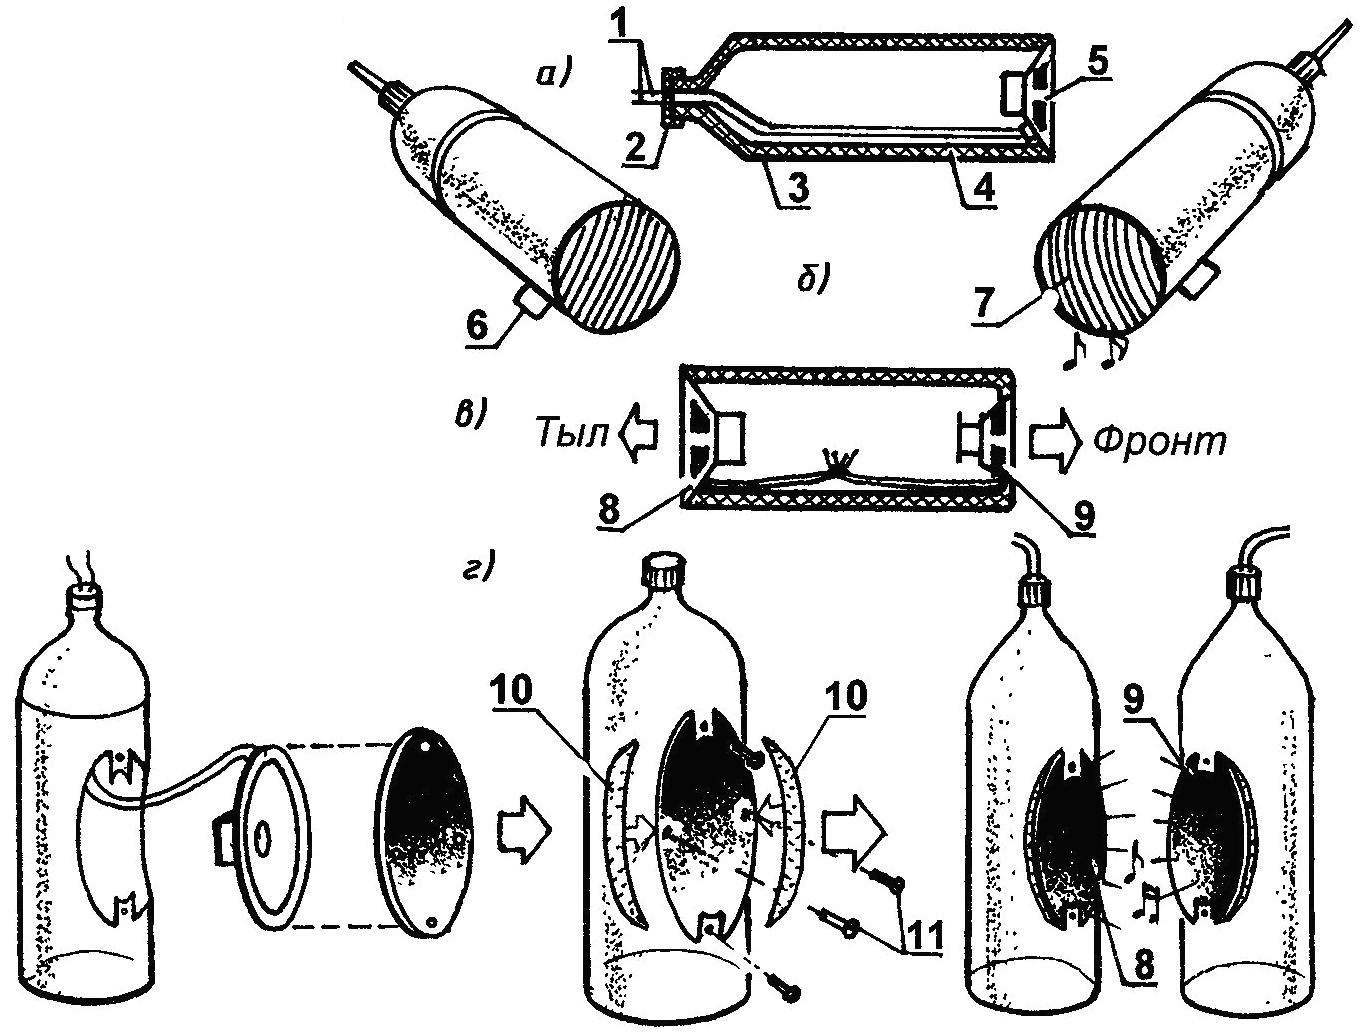 Fig. 6. Speaker system with speakers in housings made of plastic bottles